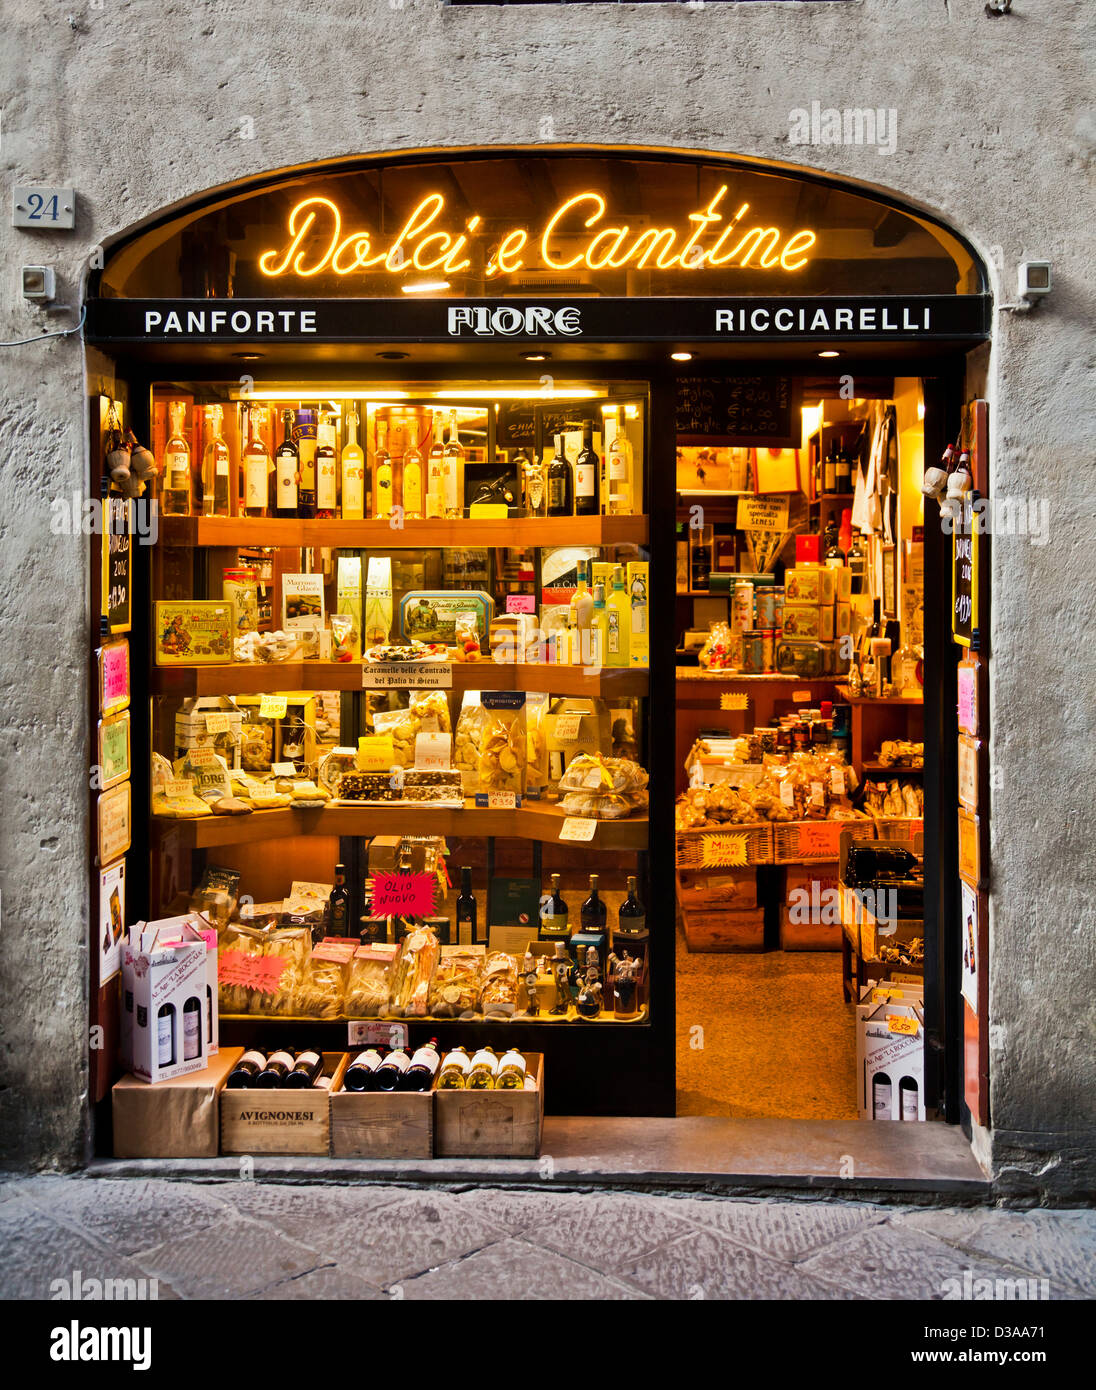 Delicatessen in Siena, Tuscany, Italy selling limoncello, Amaretti, pasta, olive oil, panforte, sweets, in a window - Stock Image